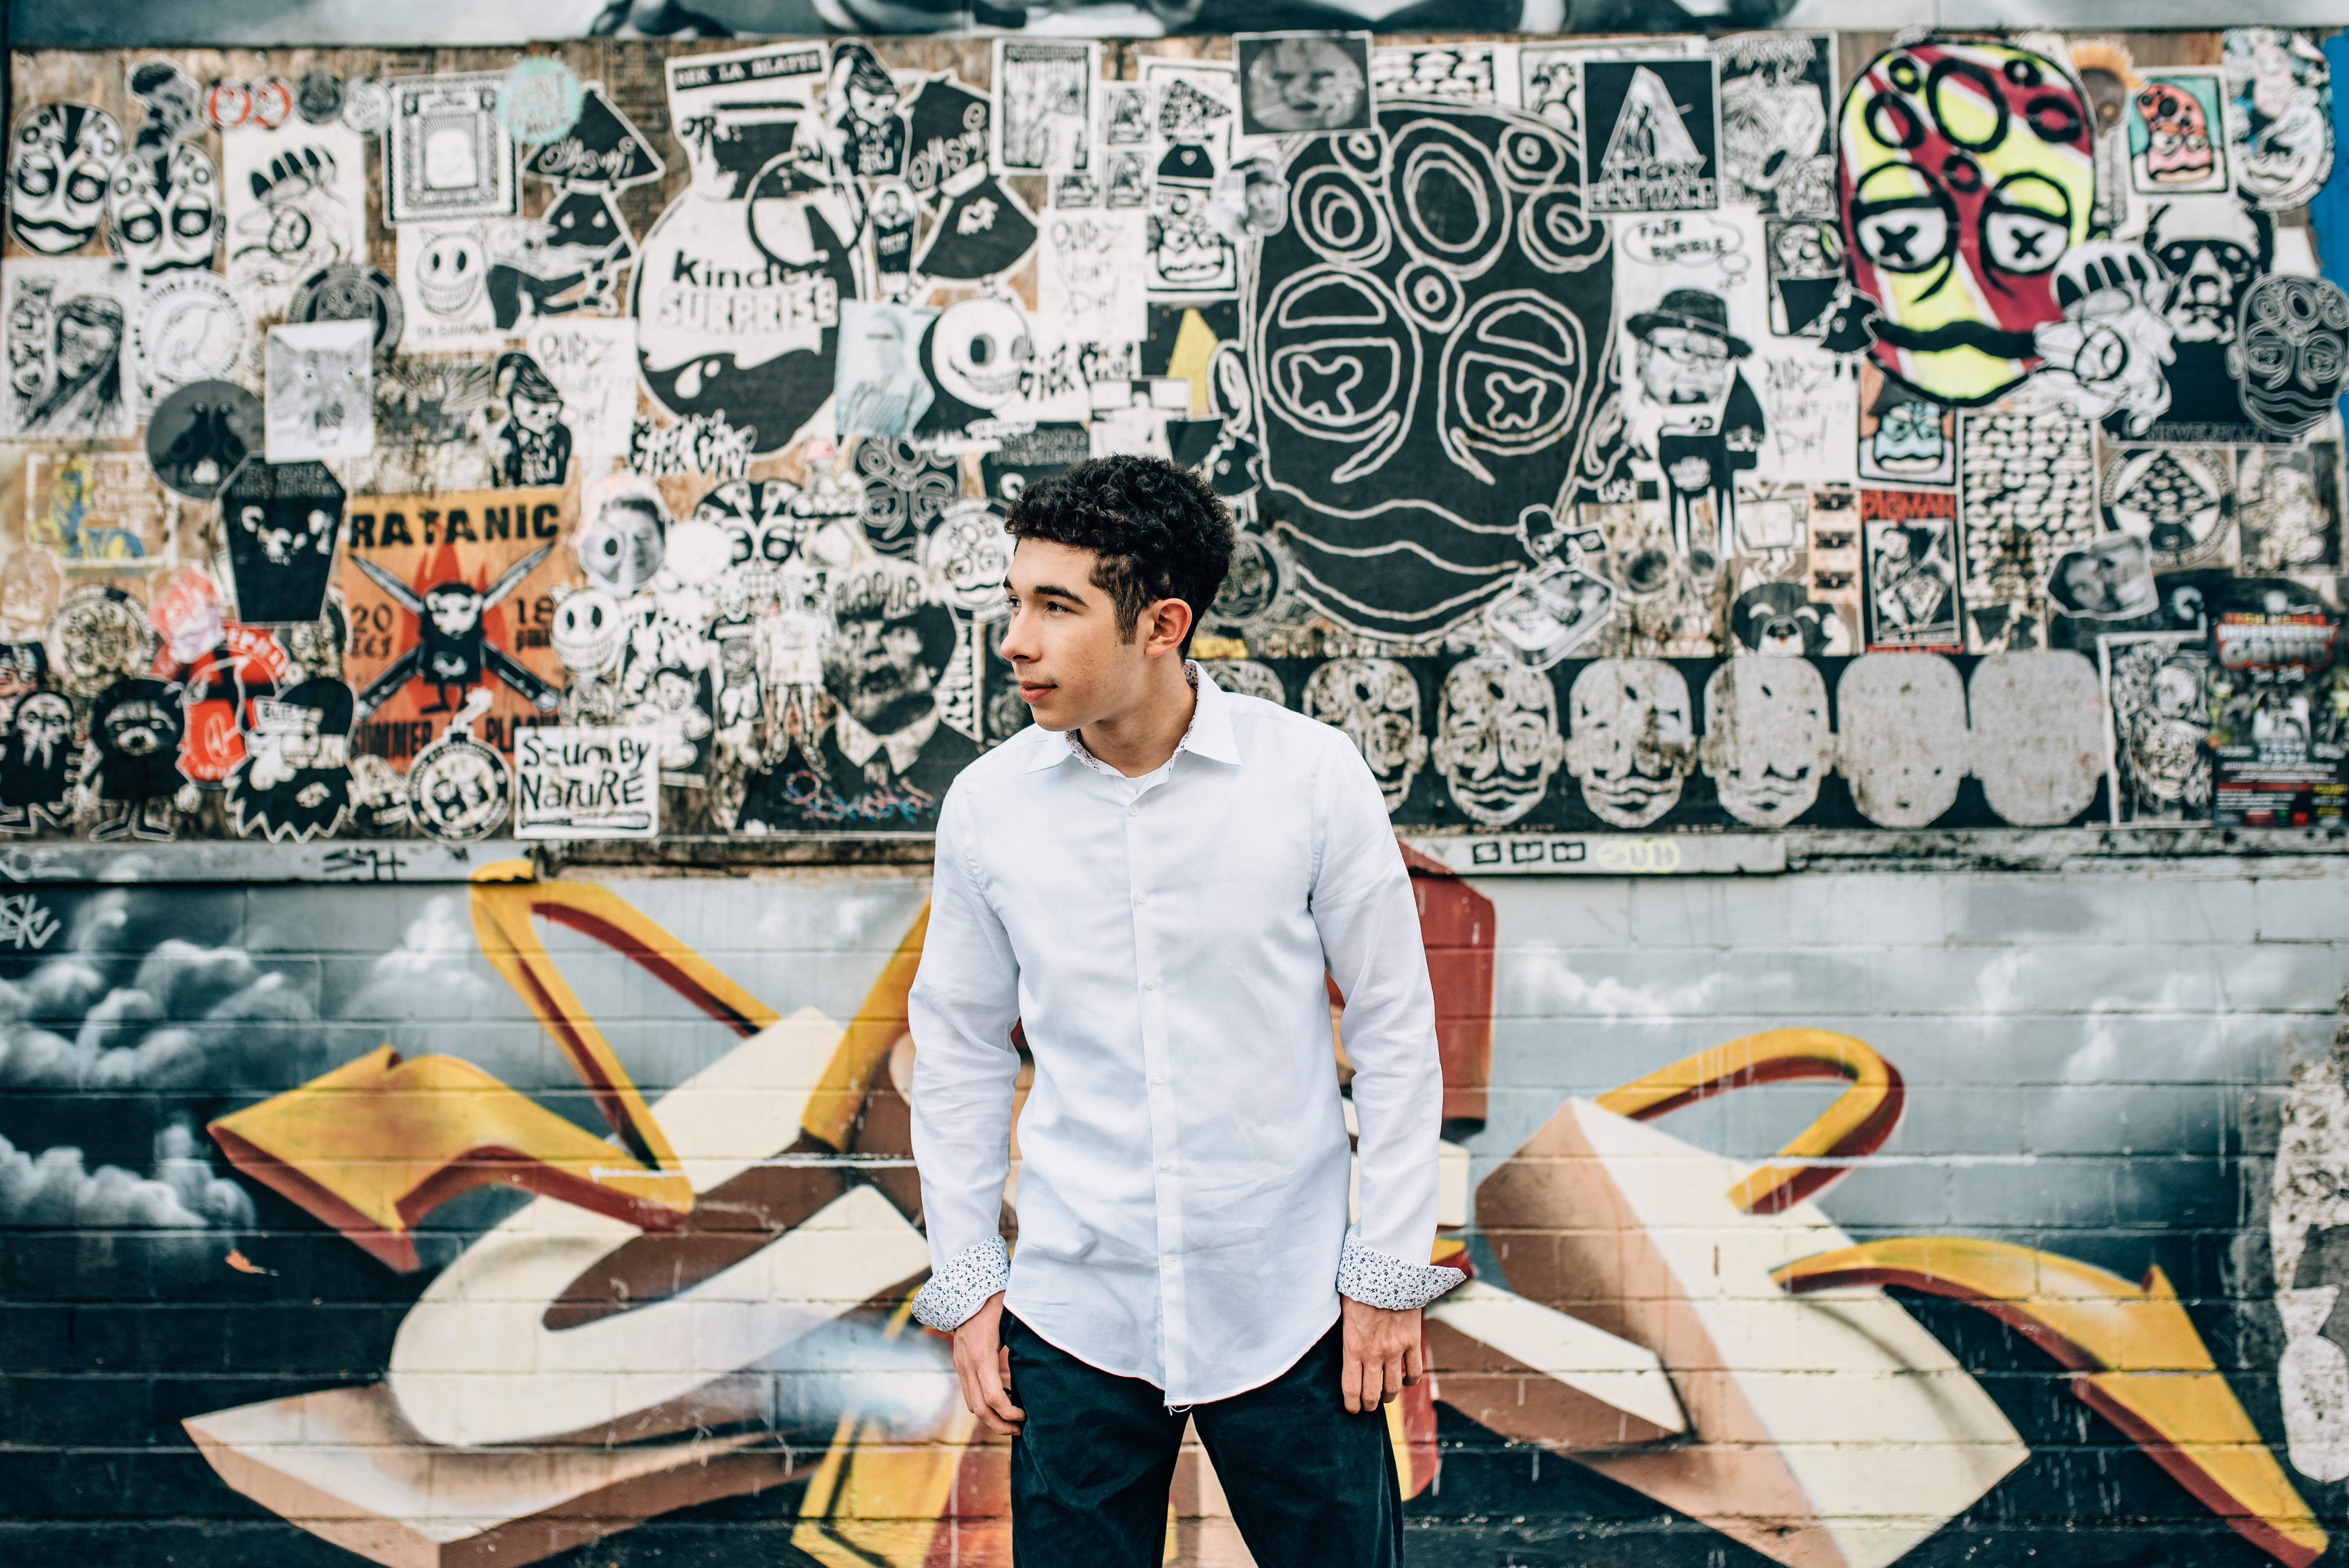 guy in white button down shirt standing in front of graffiti wall